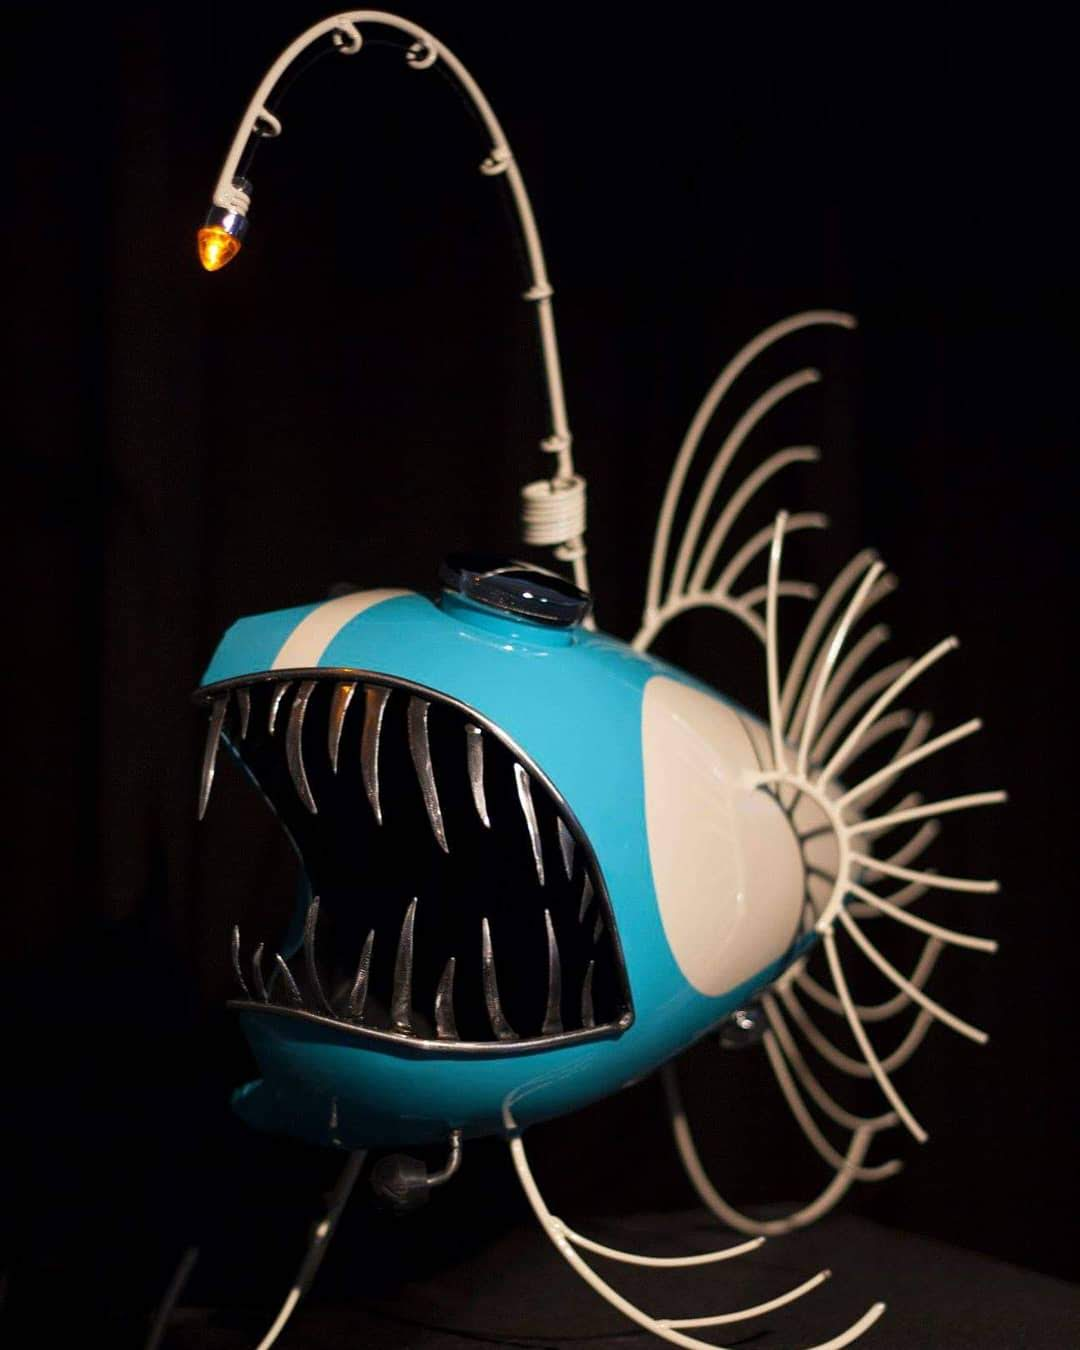 Blue Anglerfish